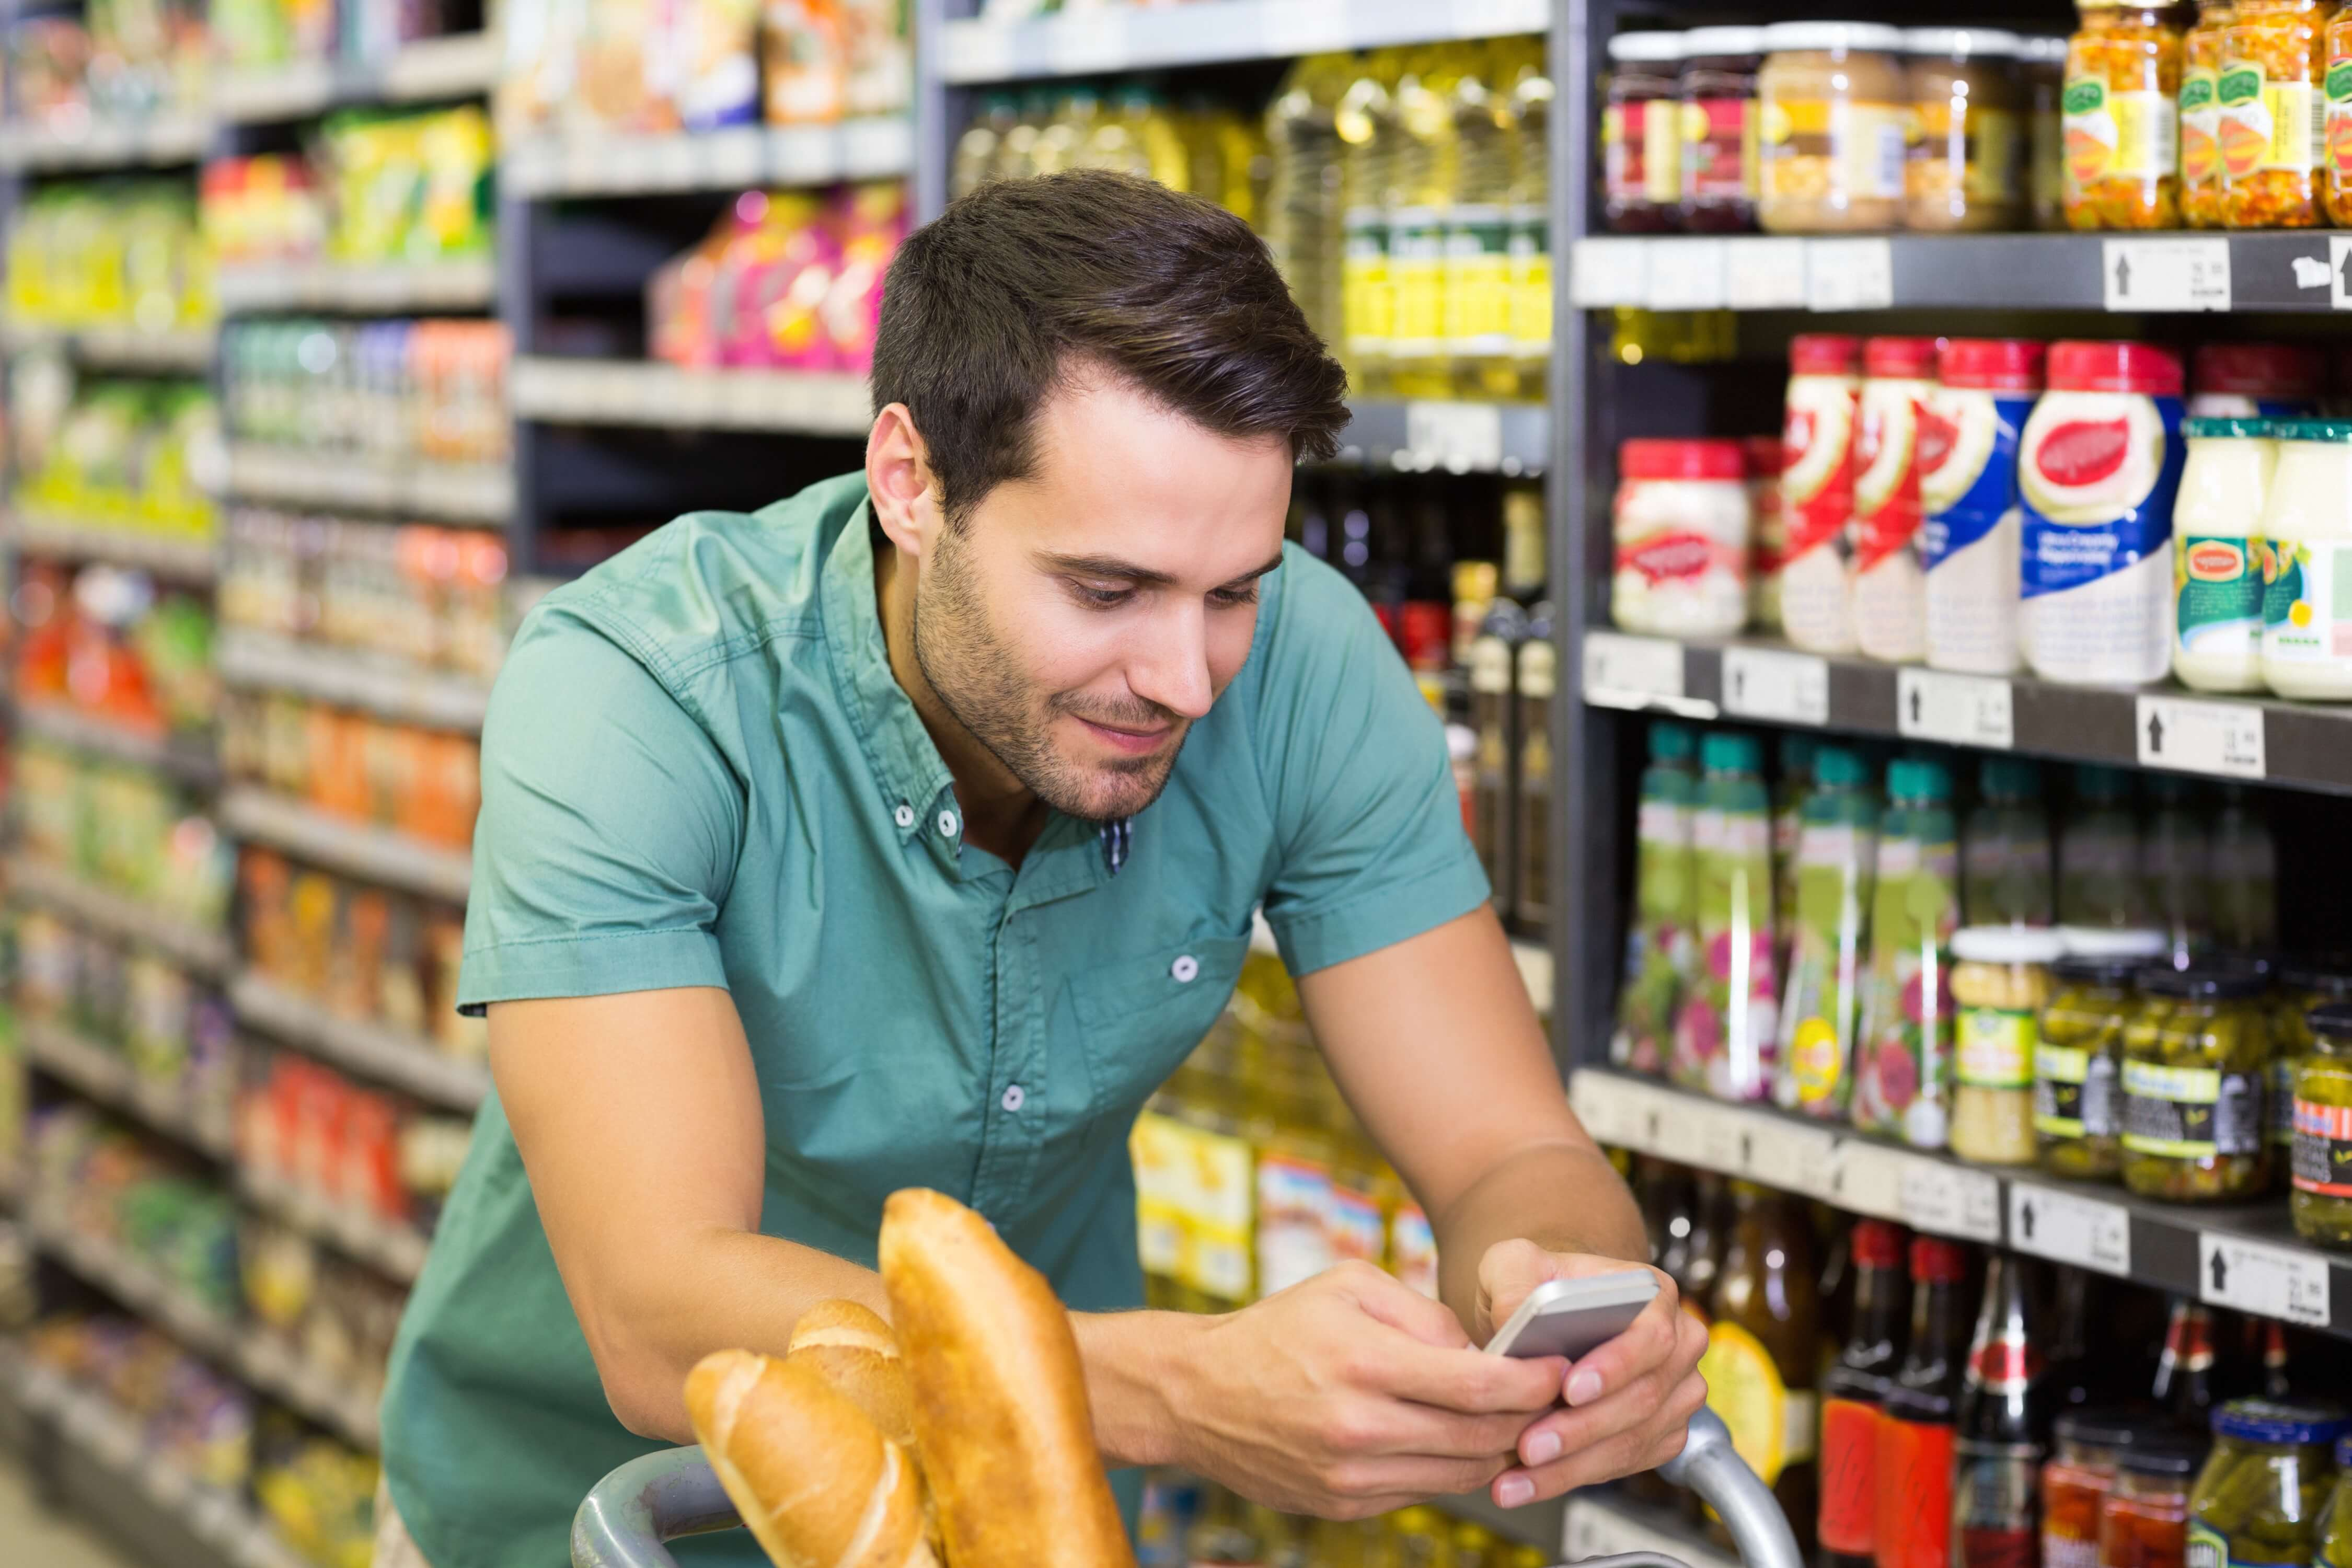 Analytics & Optimization for Consumer Packaged Goods